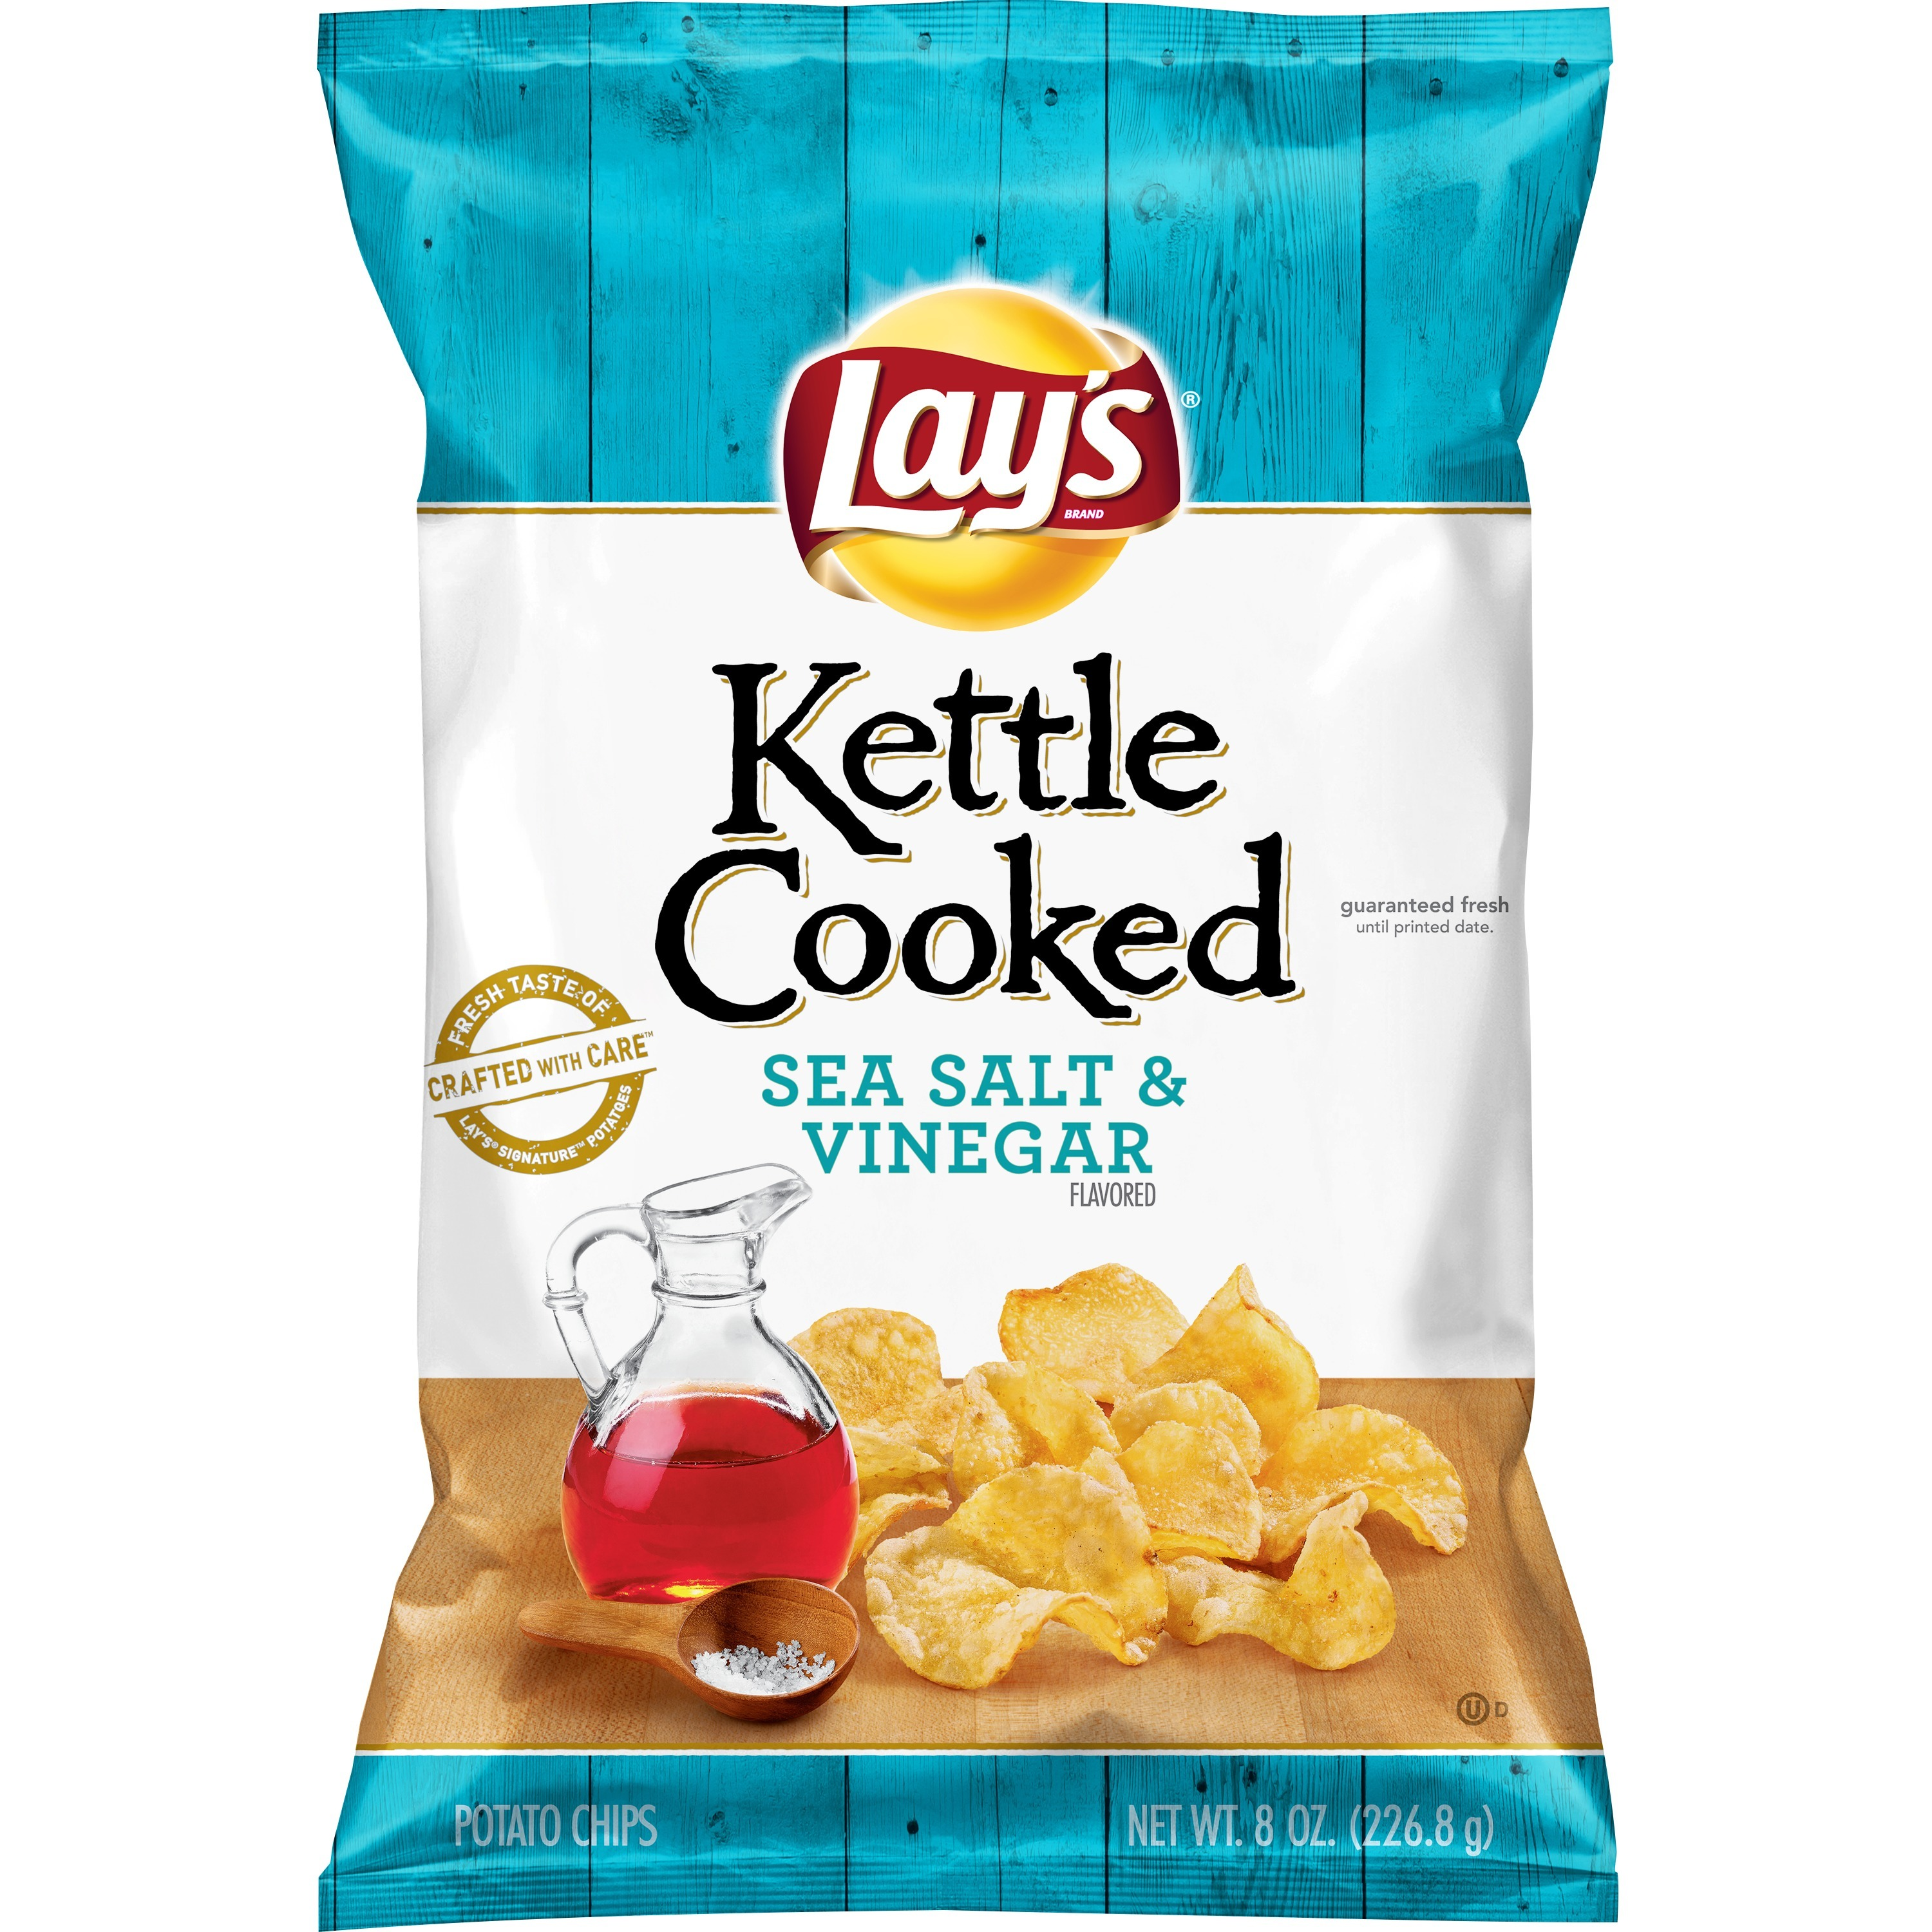 Lay's Kettle Cooked Potato Chips, Sea Salt and Vinegar, 8 oz Bag